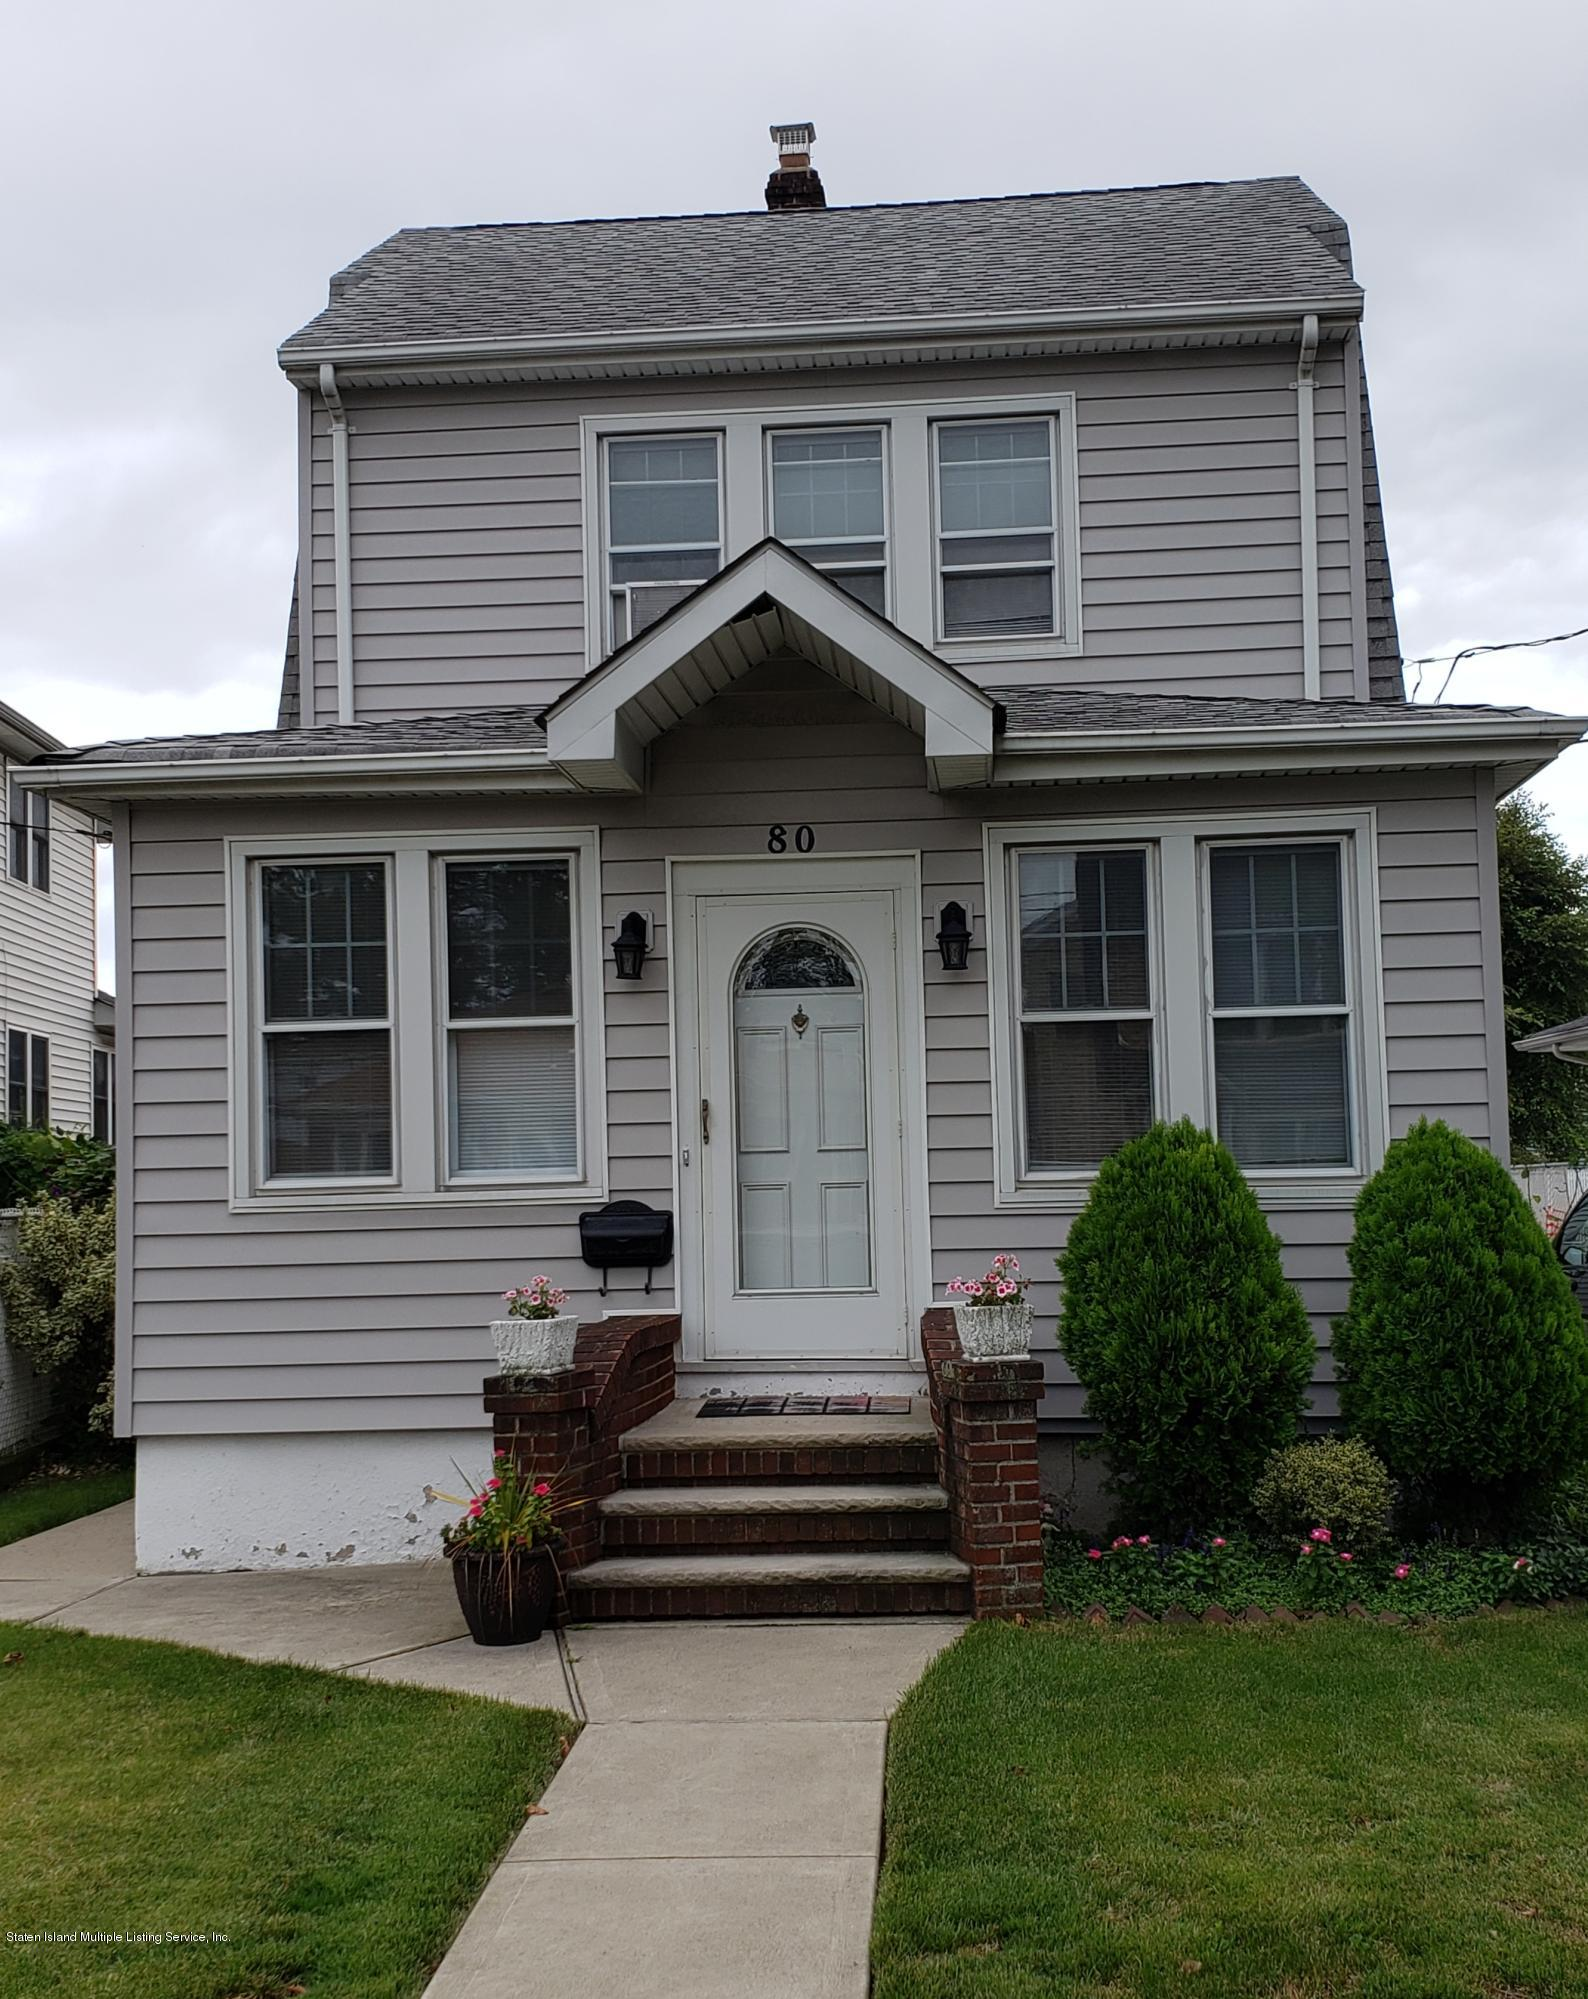 Single Family - Detached 80 Grant Place  Staten Island, NY 10306, MLS-1134591-2